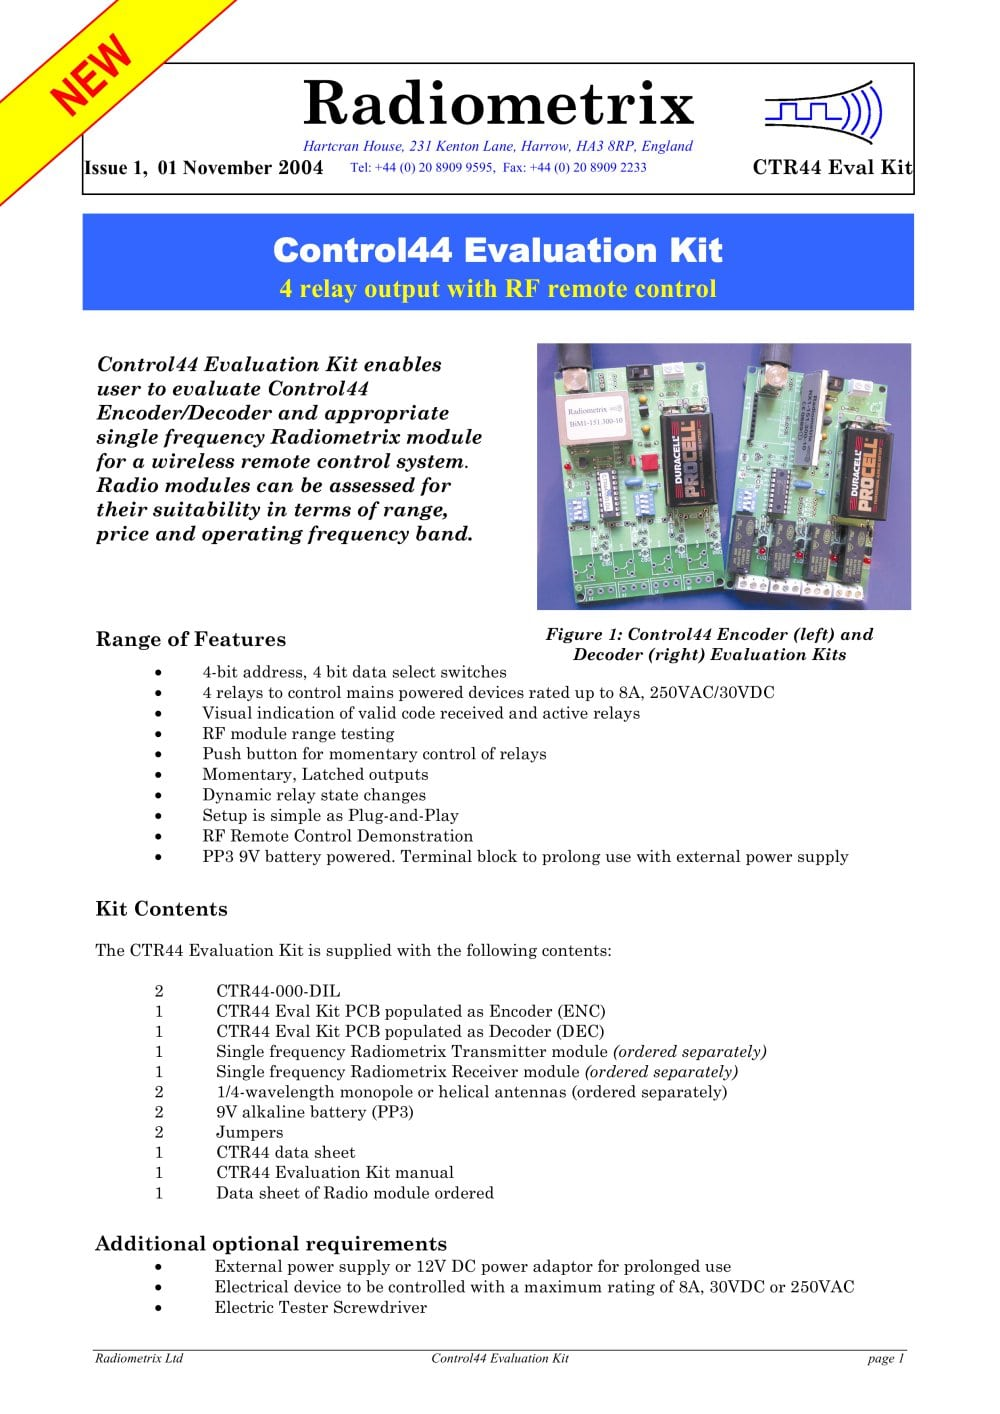 Control44 Evaluation Kit Radiometrix Pdf Catalogs Technical Electrical Relay Testing 1 7 Pages